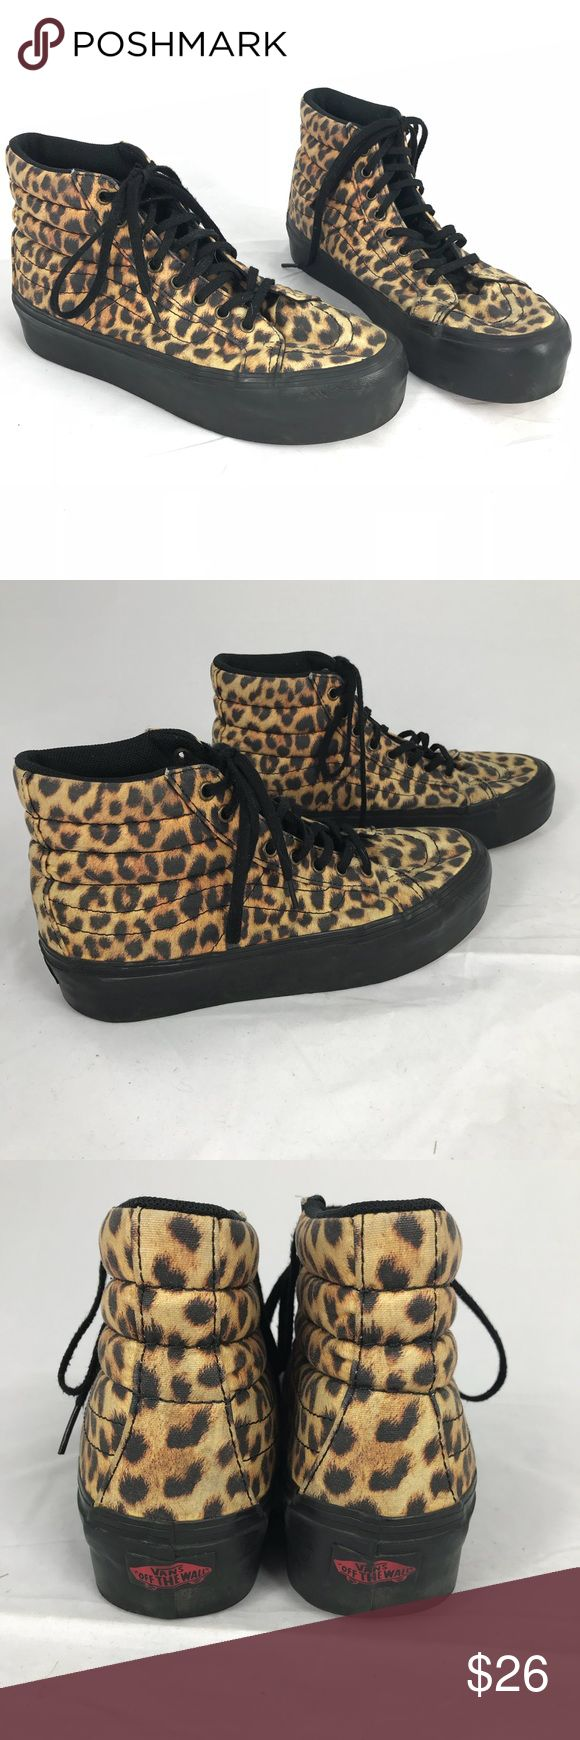 VANS Leopard Hi Top Shoes Cute shoes to pair with jeans or a casual mini dress or skirt! 💜 Size 8 Womens / 6.5 Mens Great overall condition. Minor wrinkling to side rubber shoe which may be how it was manufactured. See photo. Minor wear to laces. Vans Shoes Sneakers